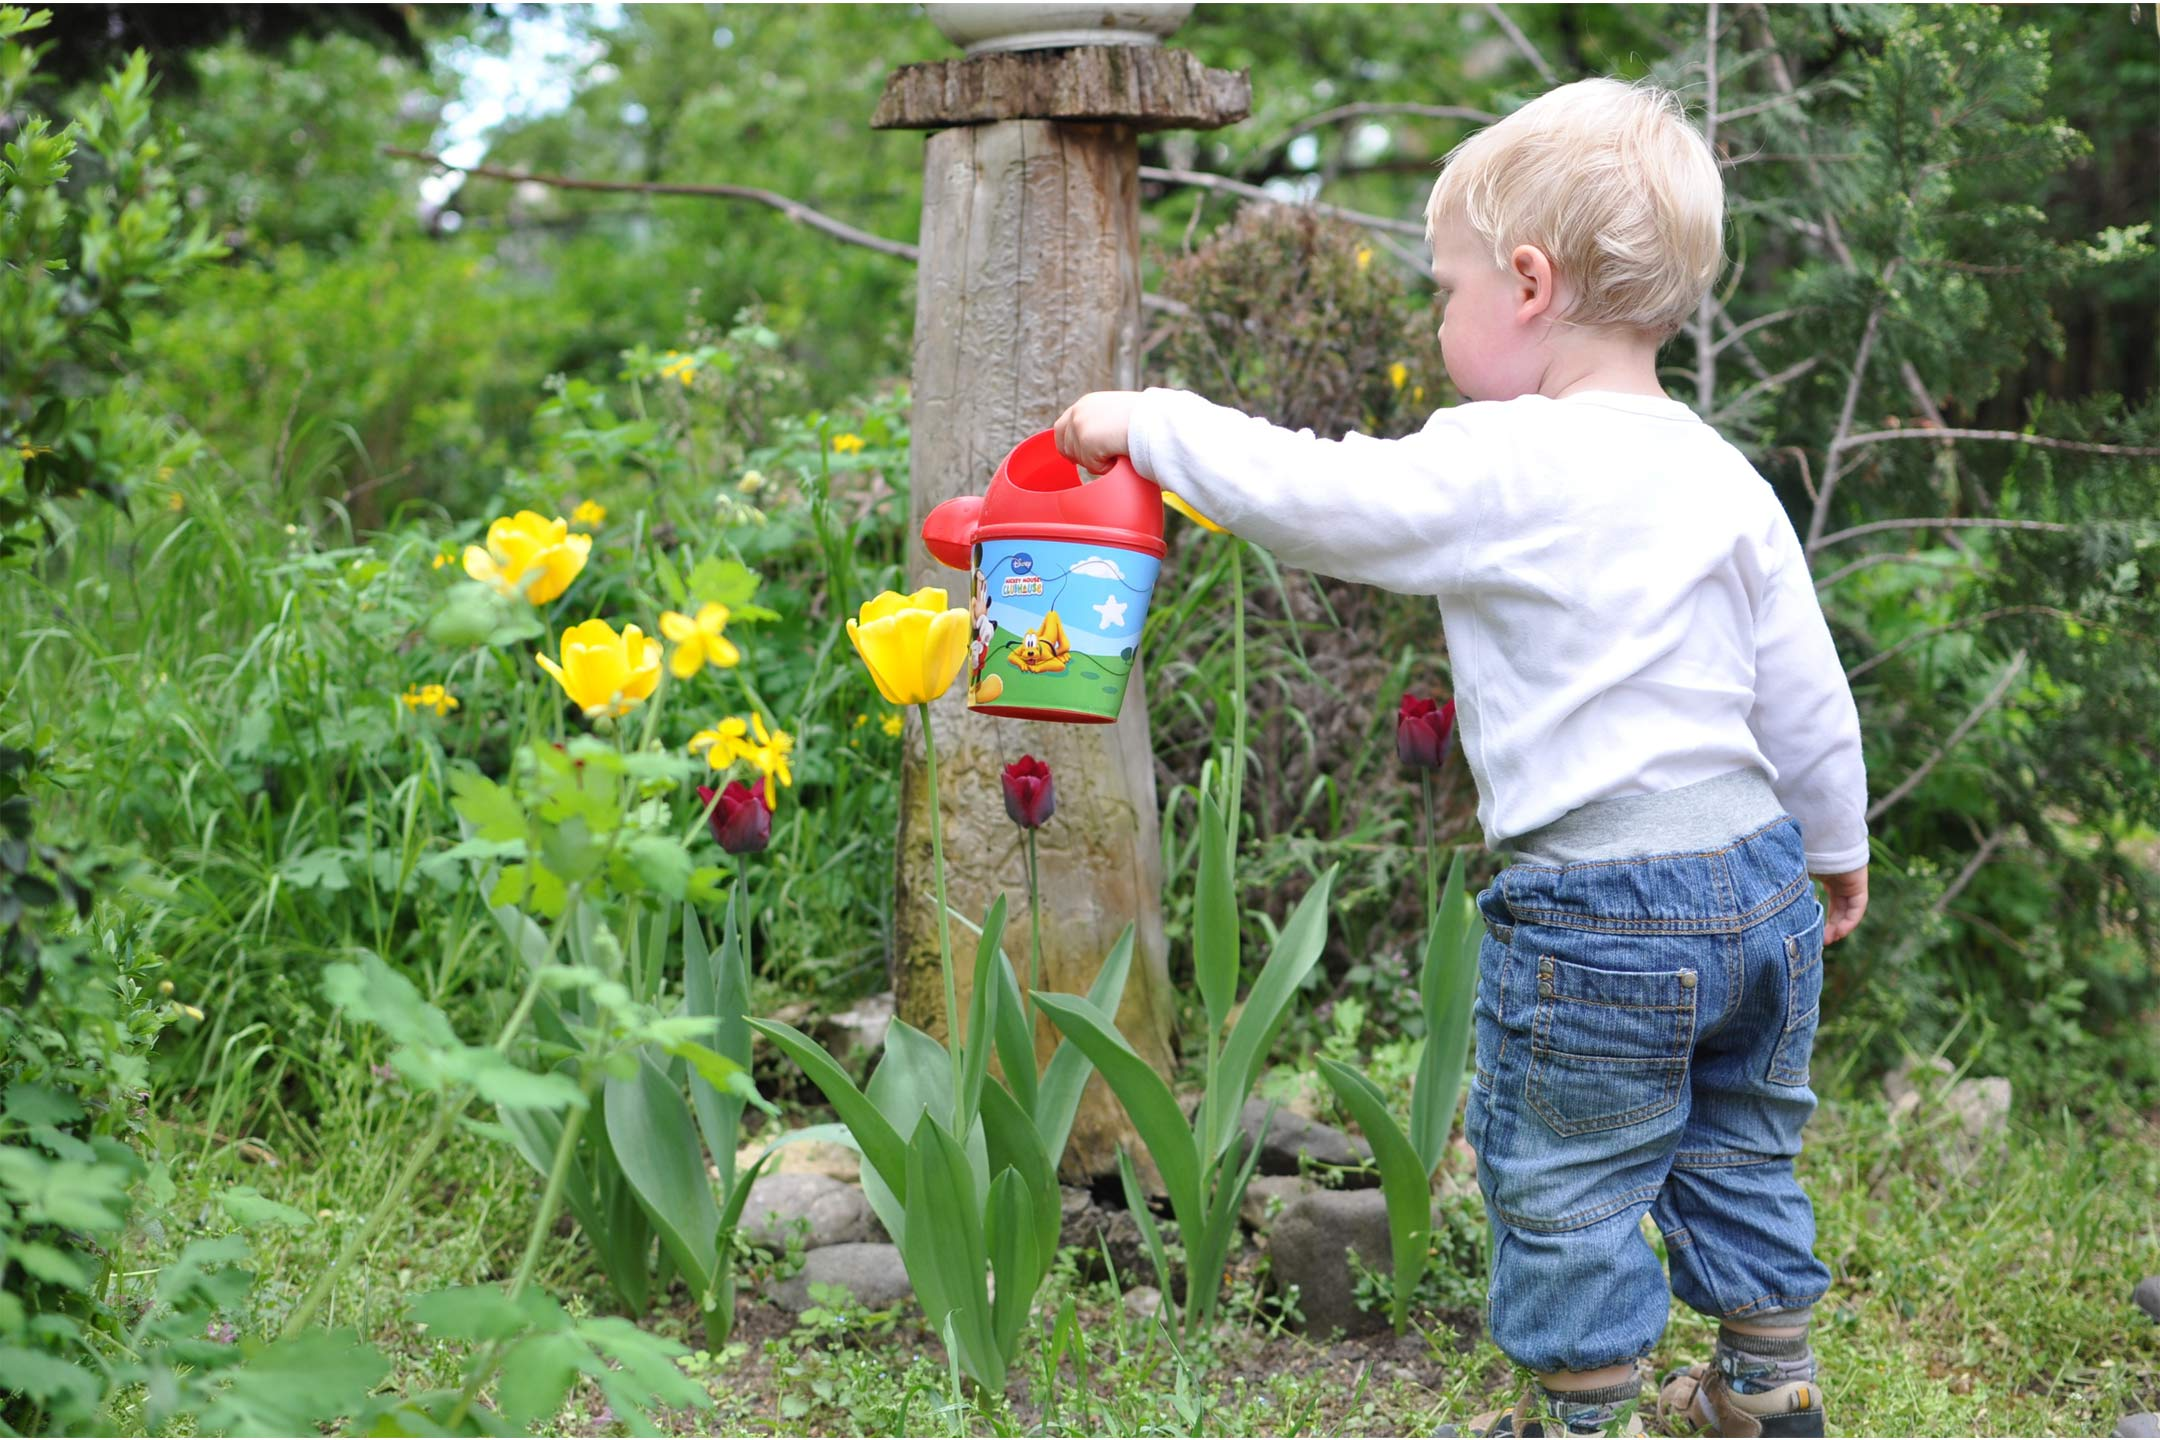 child-toddler-garden-watering2160